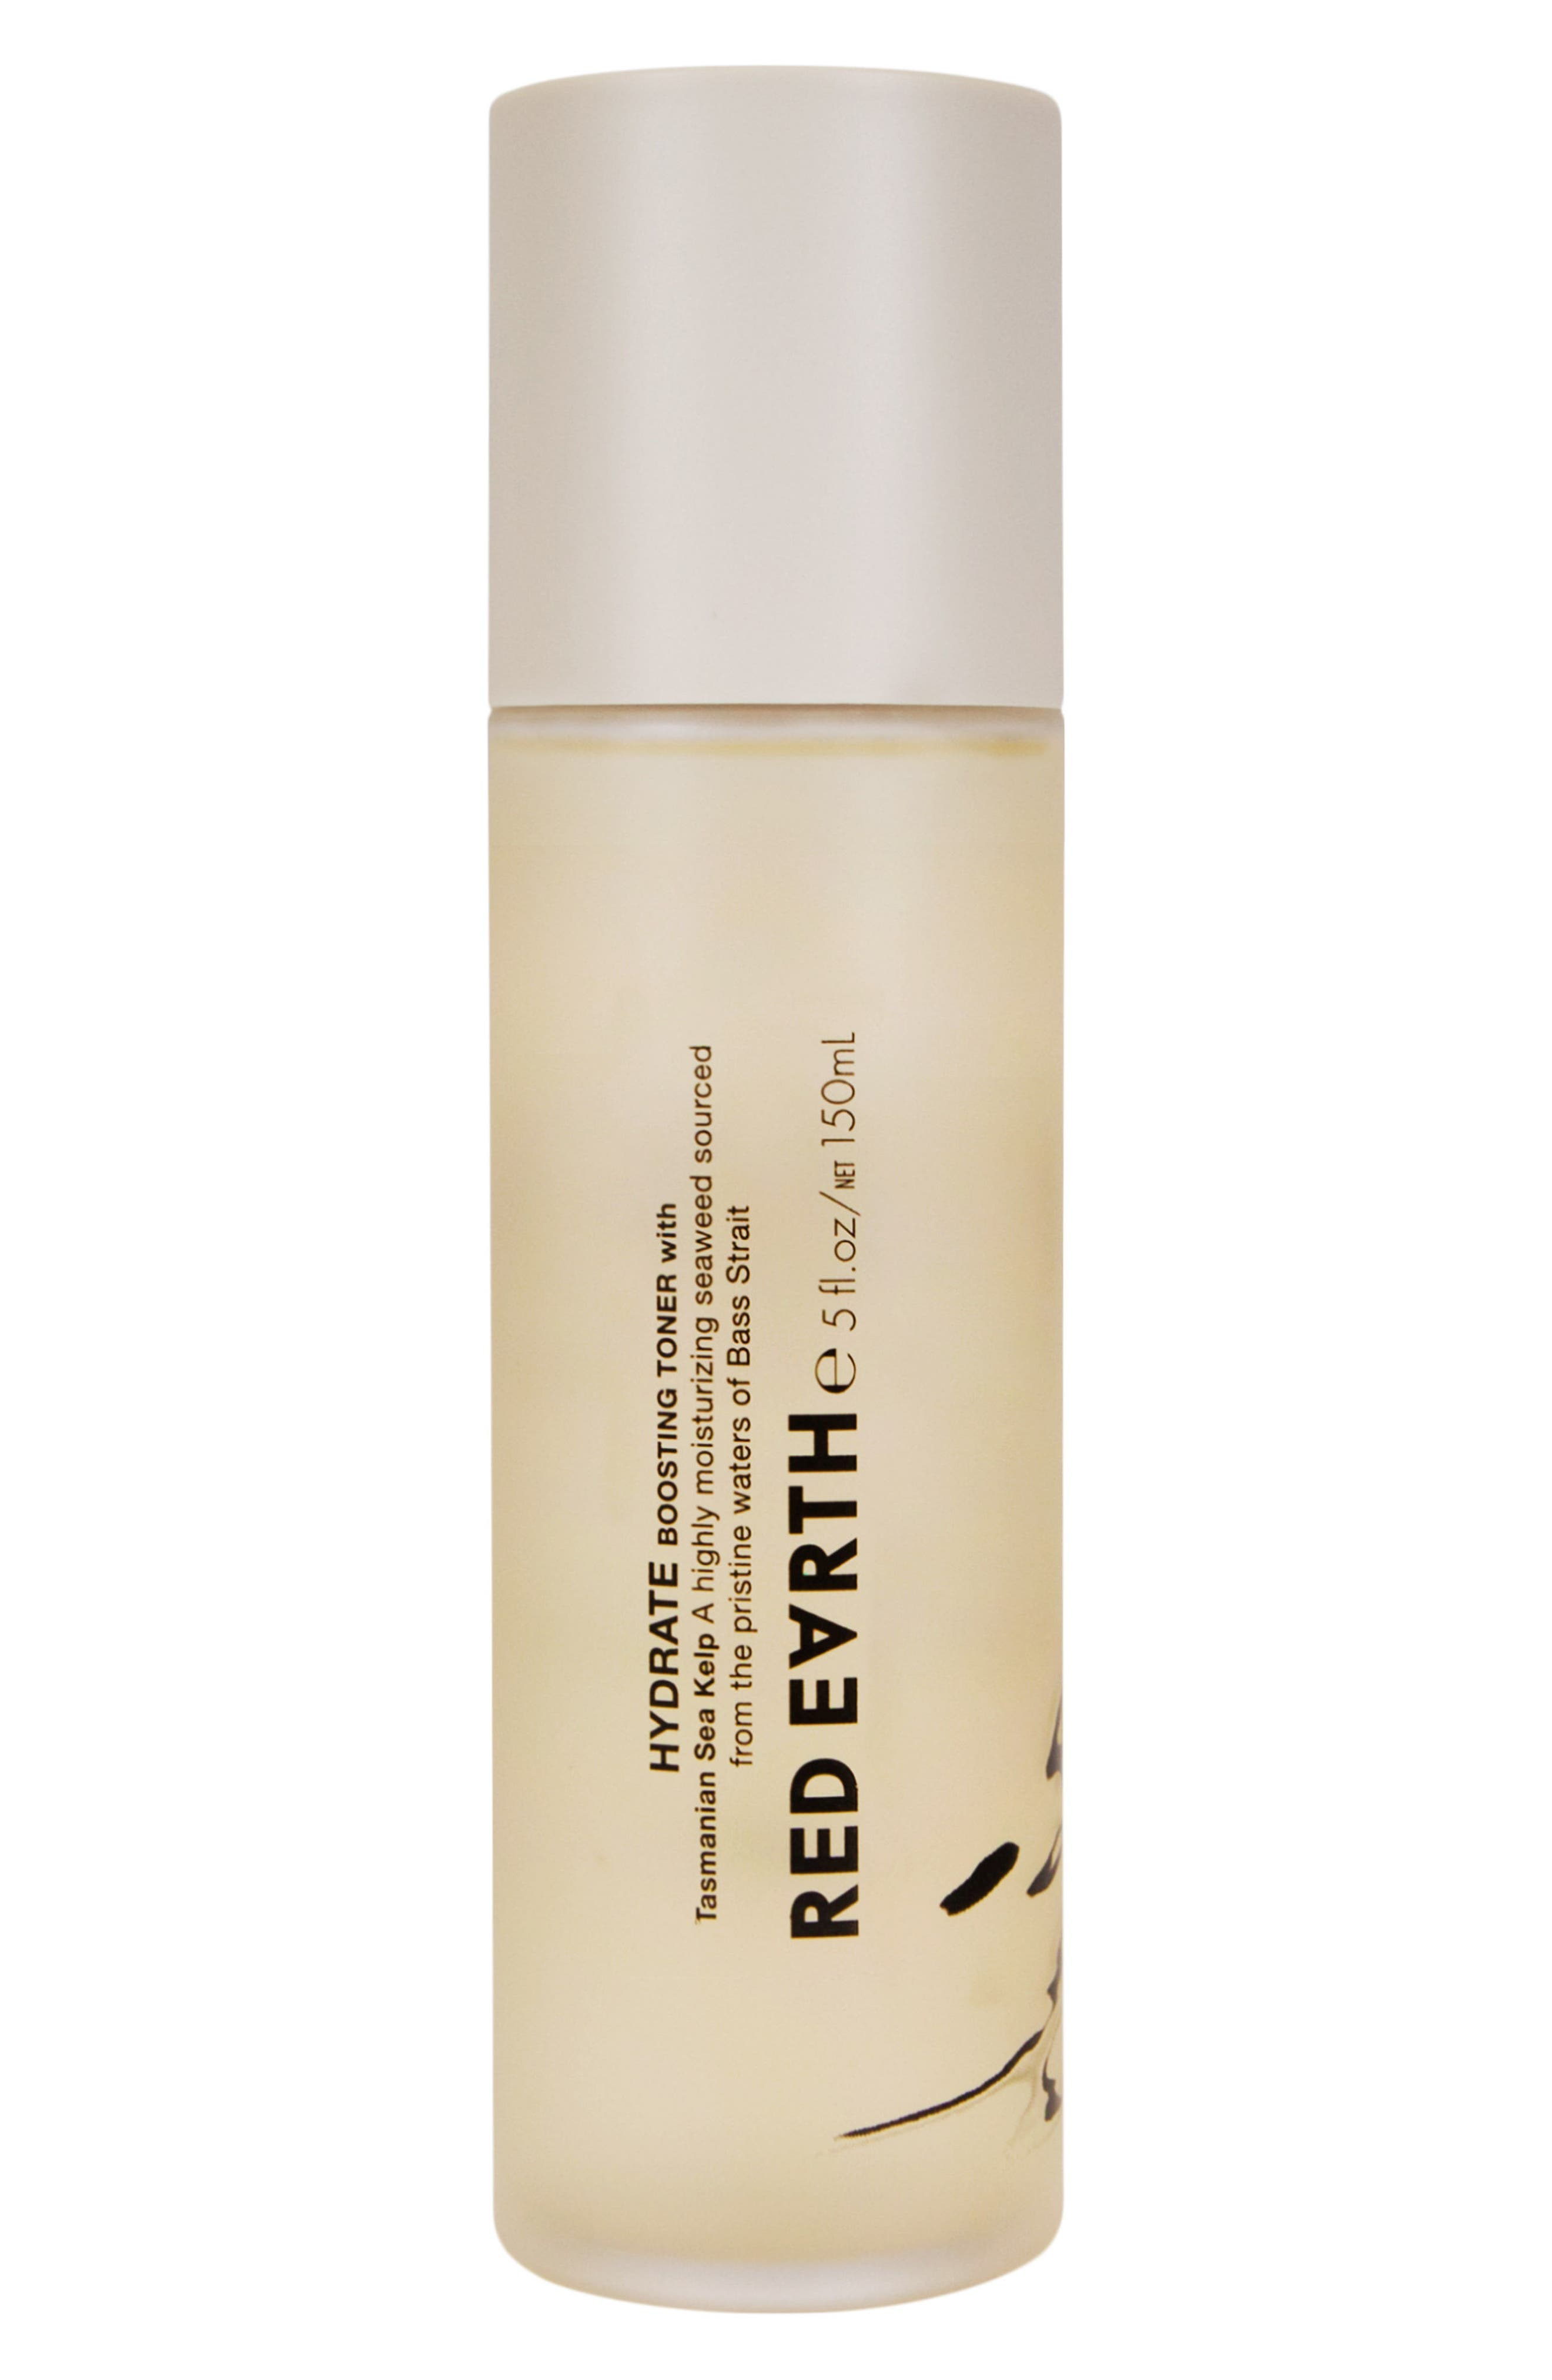 Alternate Image 1 Selected - Red Earth Hydrate Boosting Toner